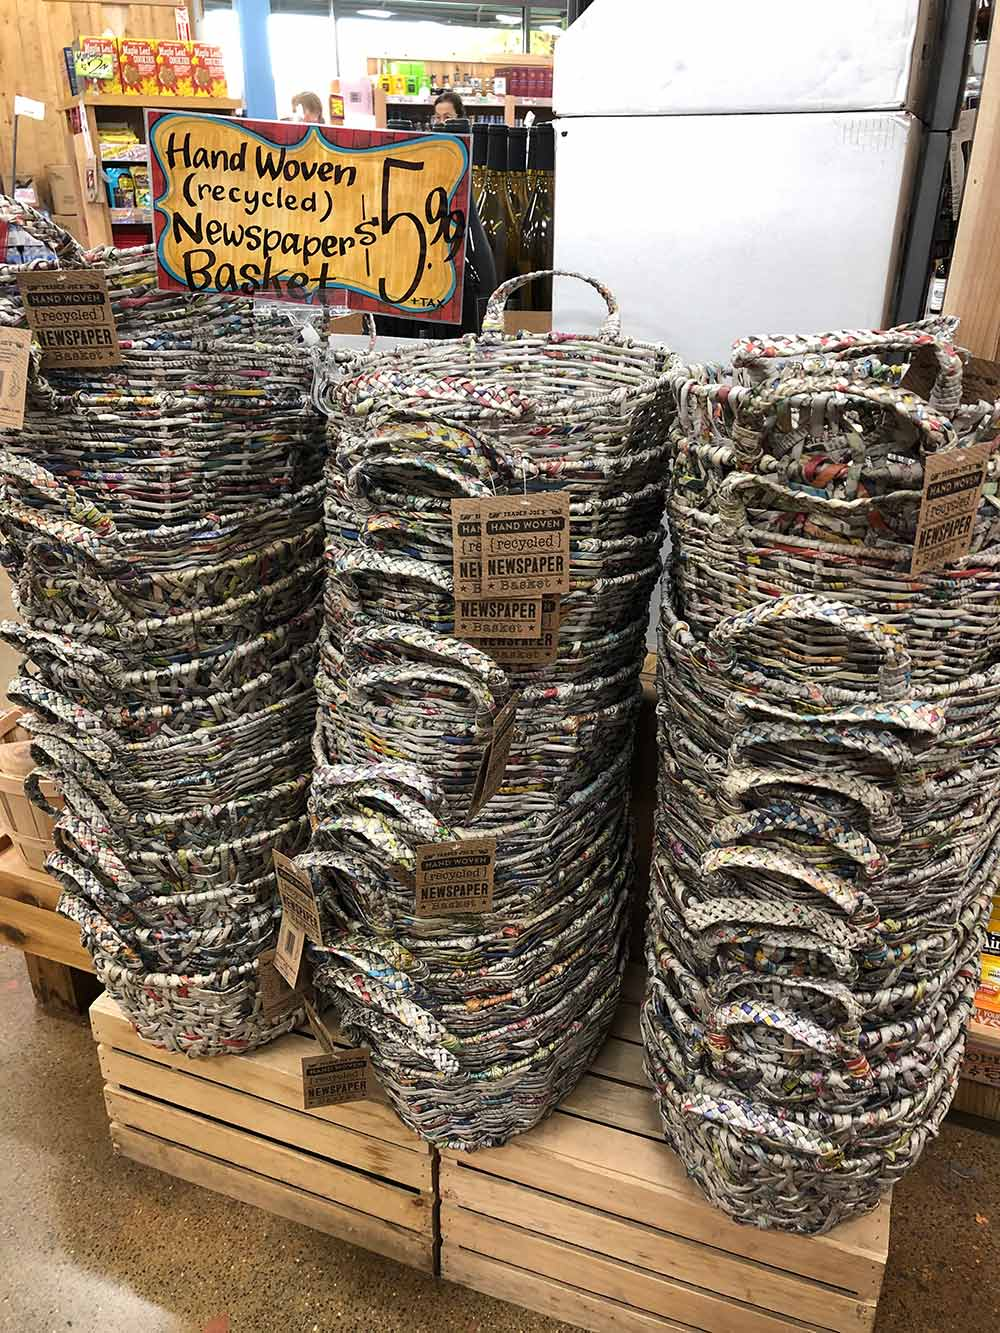 trader joes recycled newspaper baskets